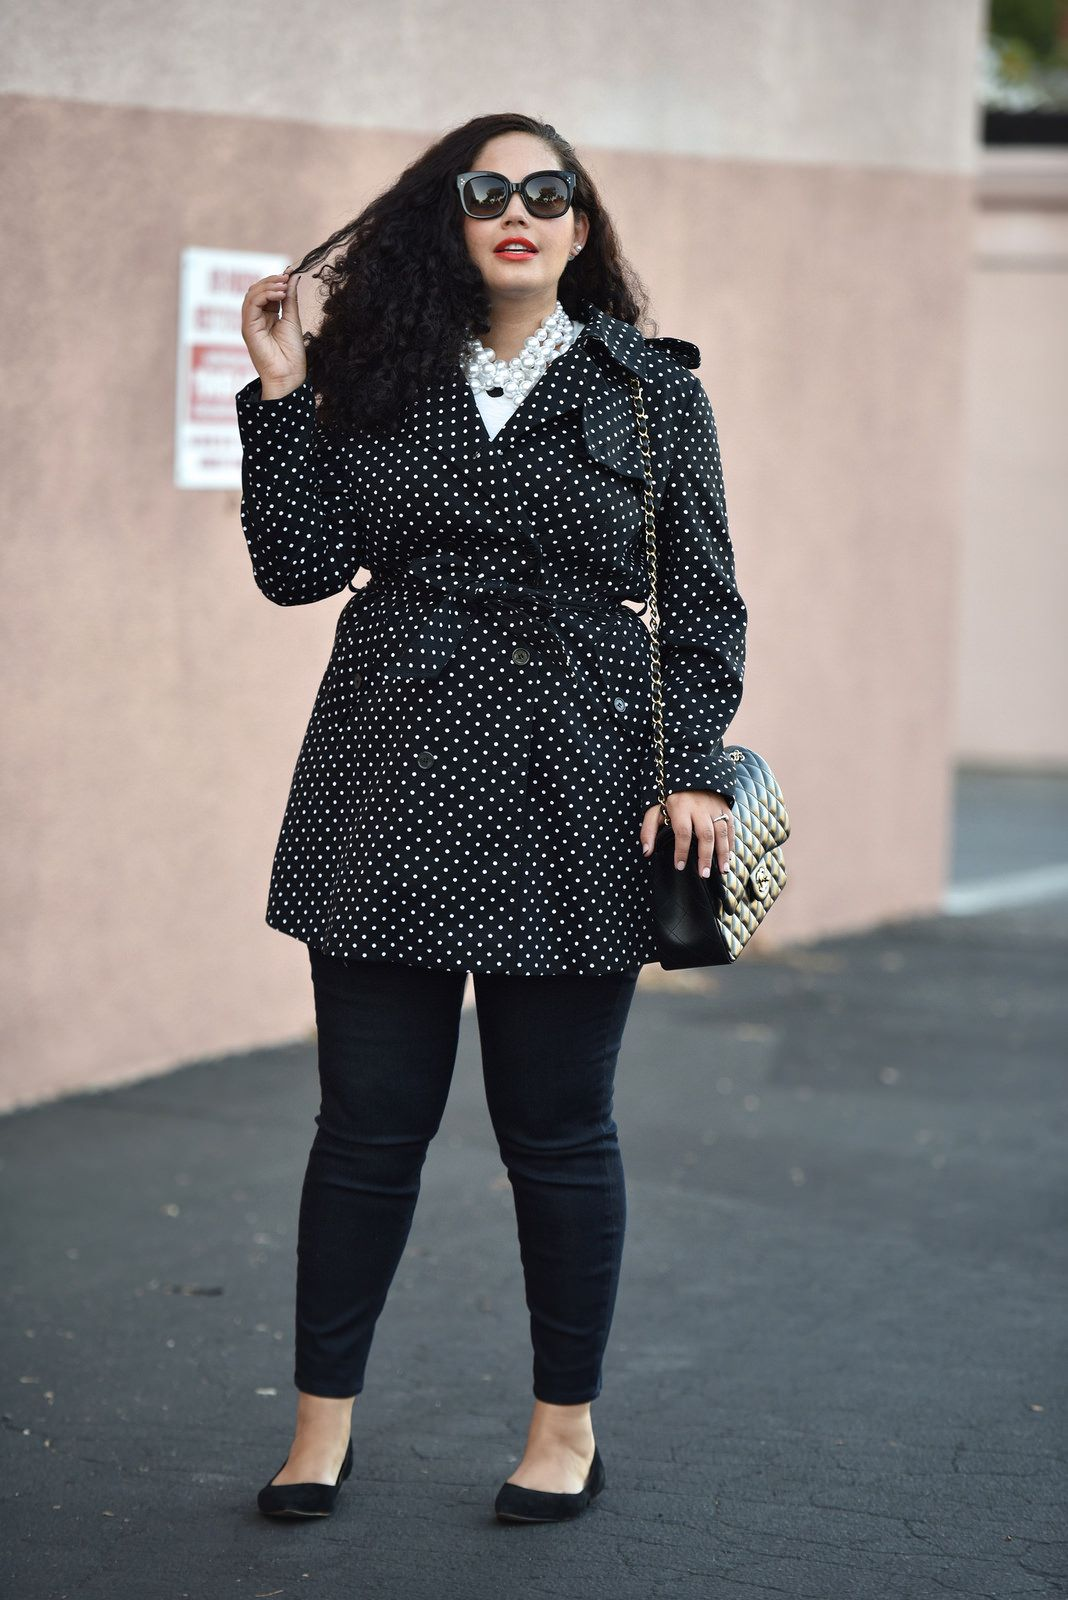 "Foto: Reprodução / <a href=""http://girlwithcurves.com/post/129536427592/polka-dots-pearls"" target=""_blank"">Girl with curves</a>"